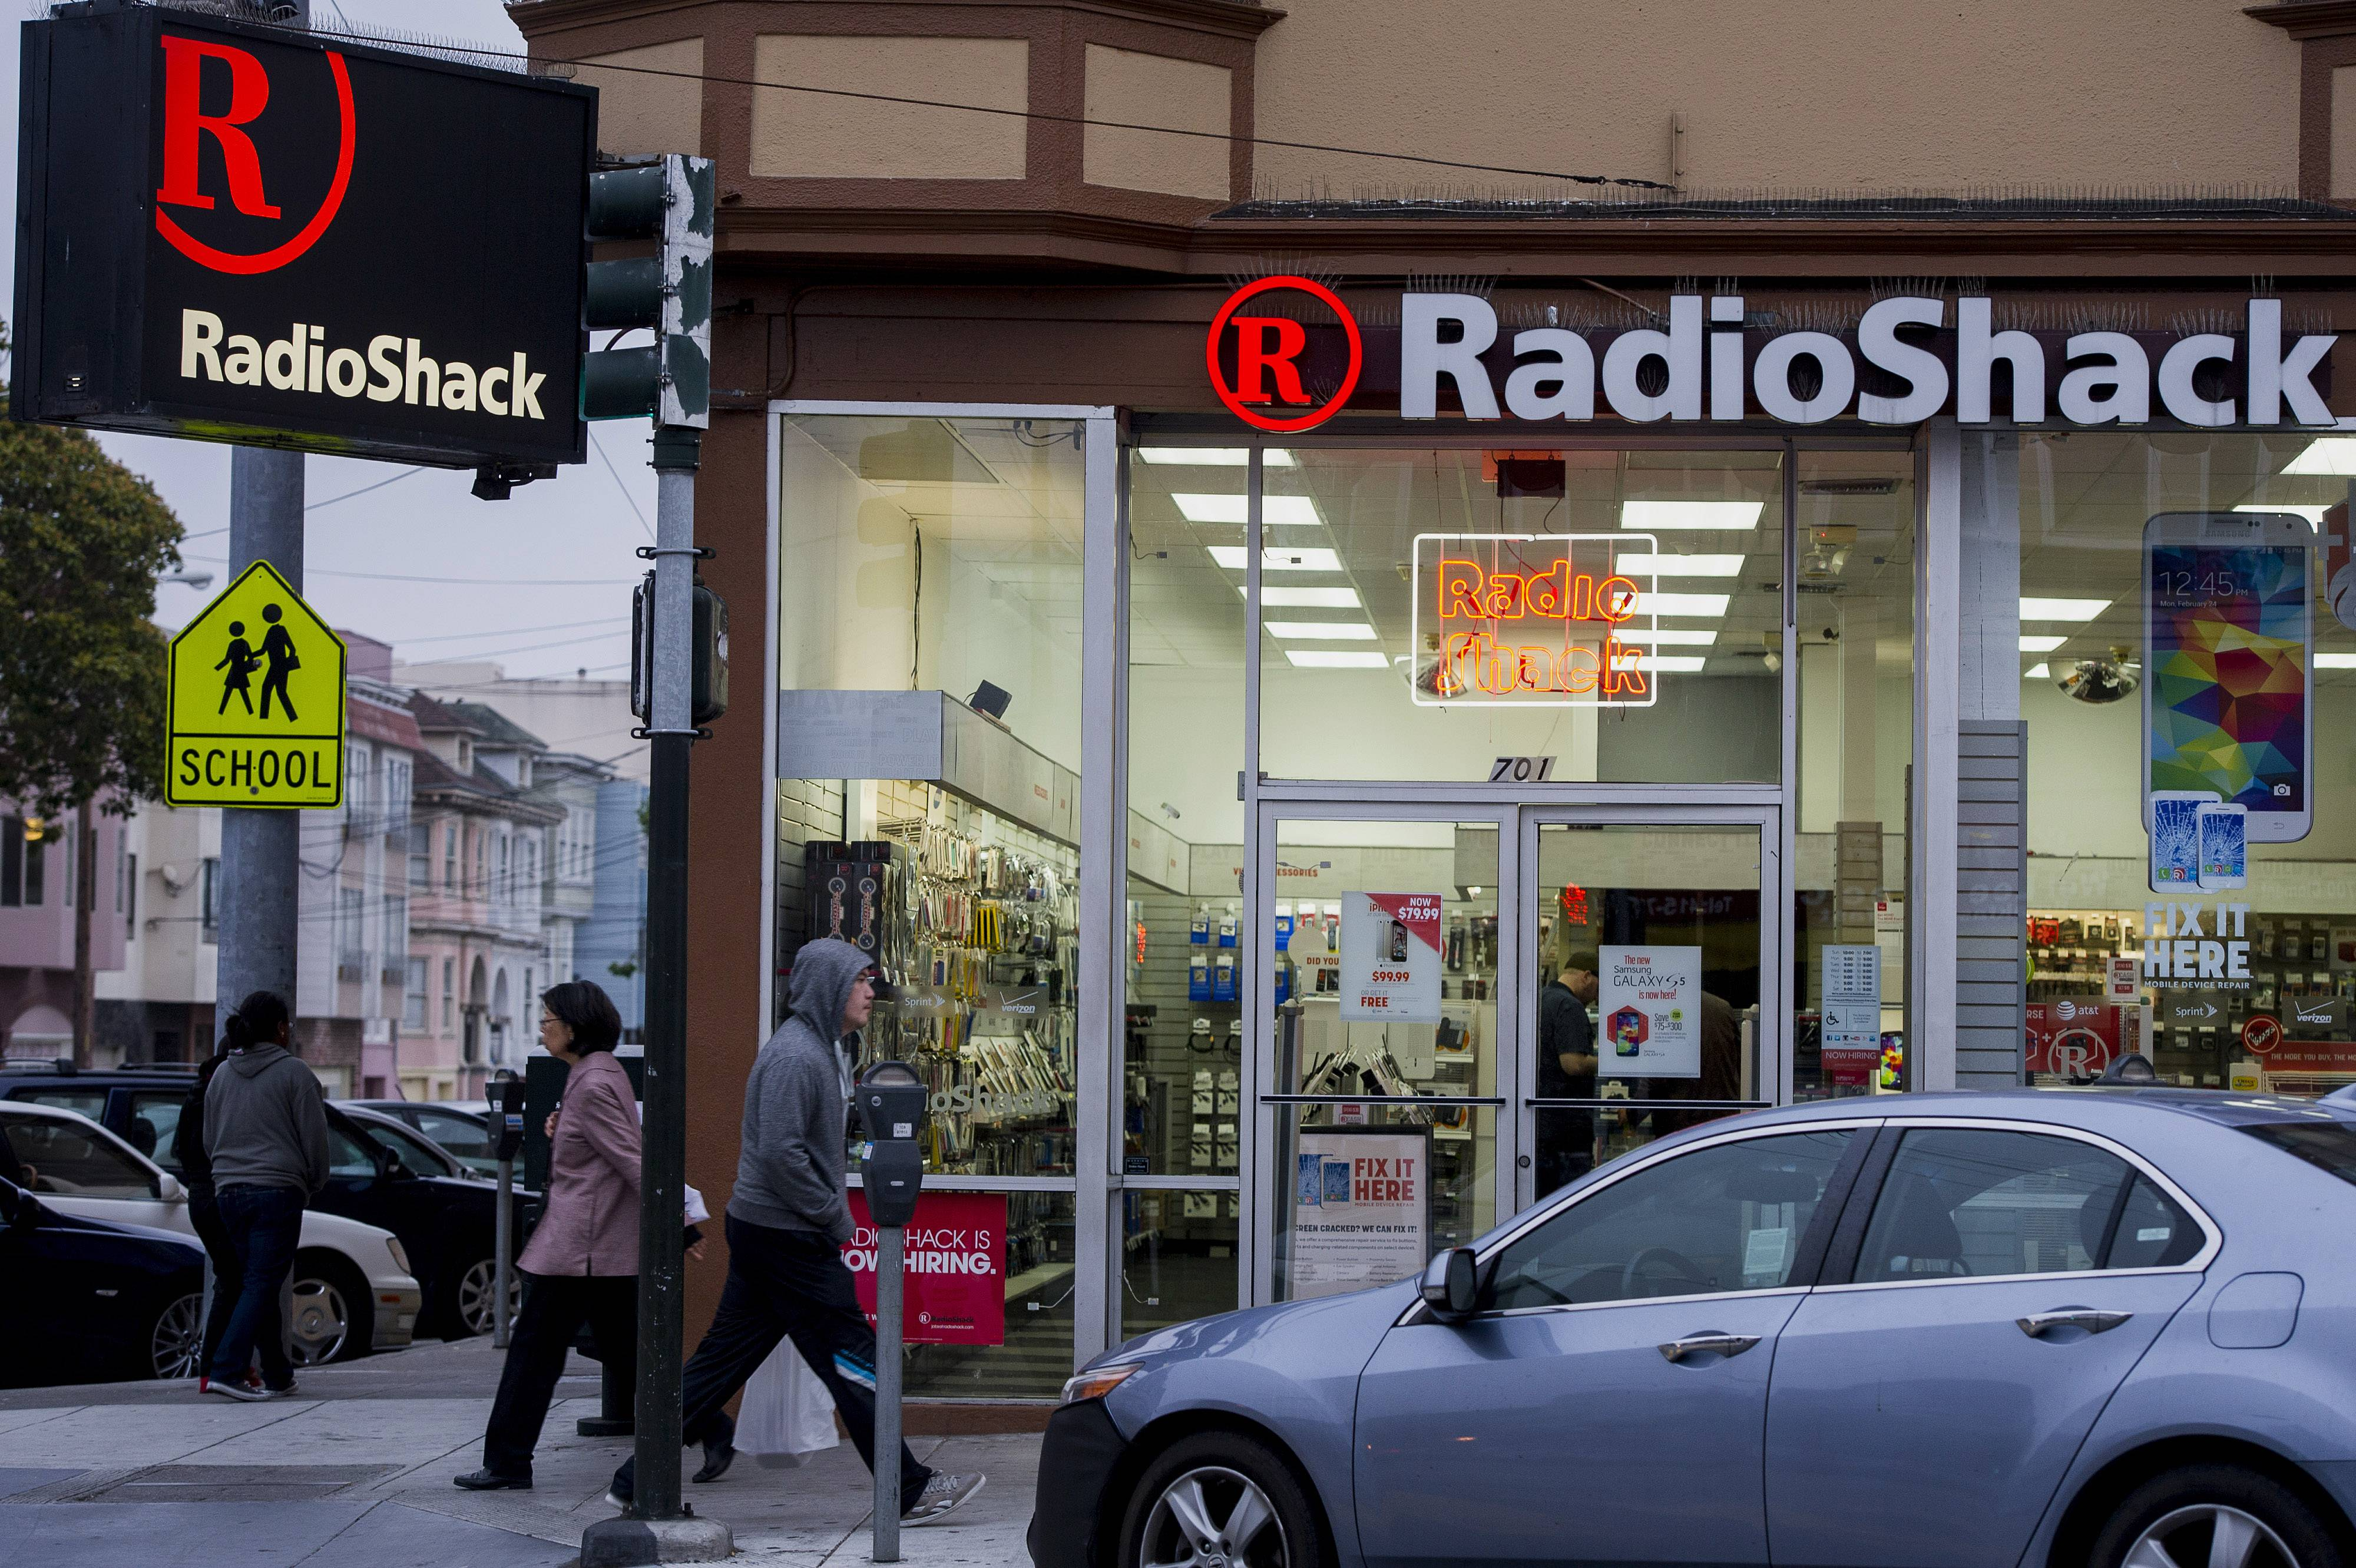 RadioShack's first-quarter loss widened and revenue slumped as the retailer dealt with weakness in its mobile business and consumer electronics.